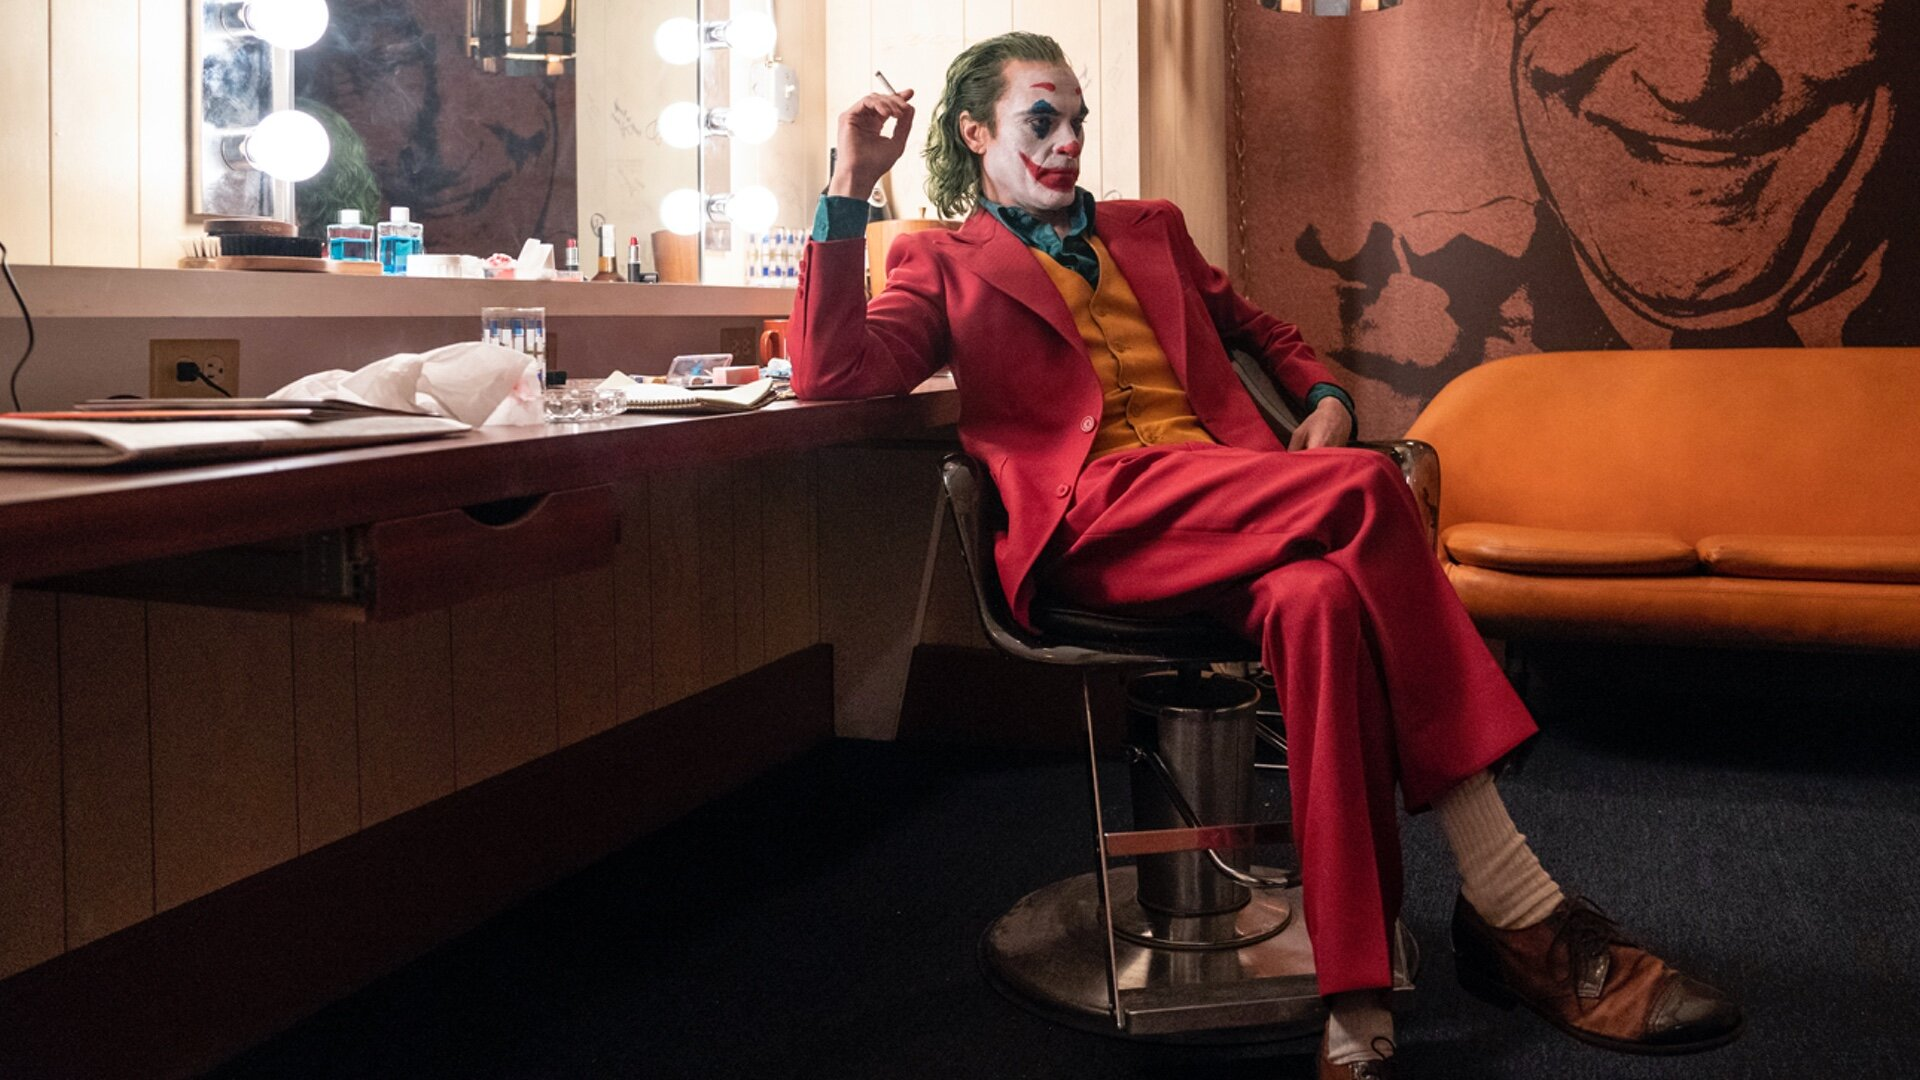 JOKER Director Todd Phillips Says Way Too Early to Tell If a Sequel Will Happen